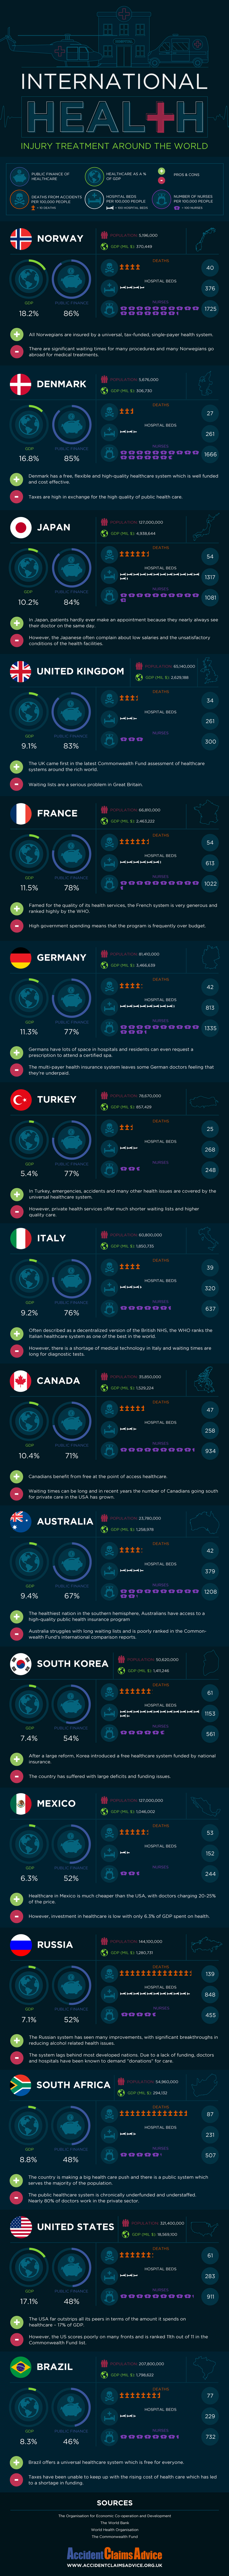 The Best and Worst: Comparing Health Systems Around the World - Infographic